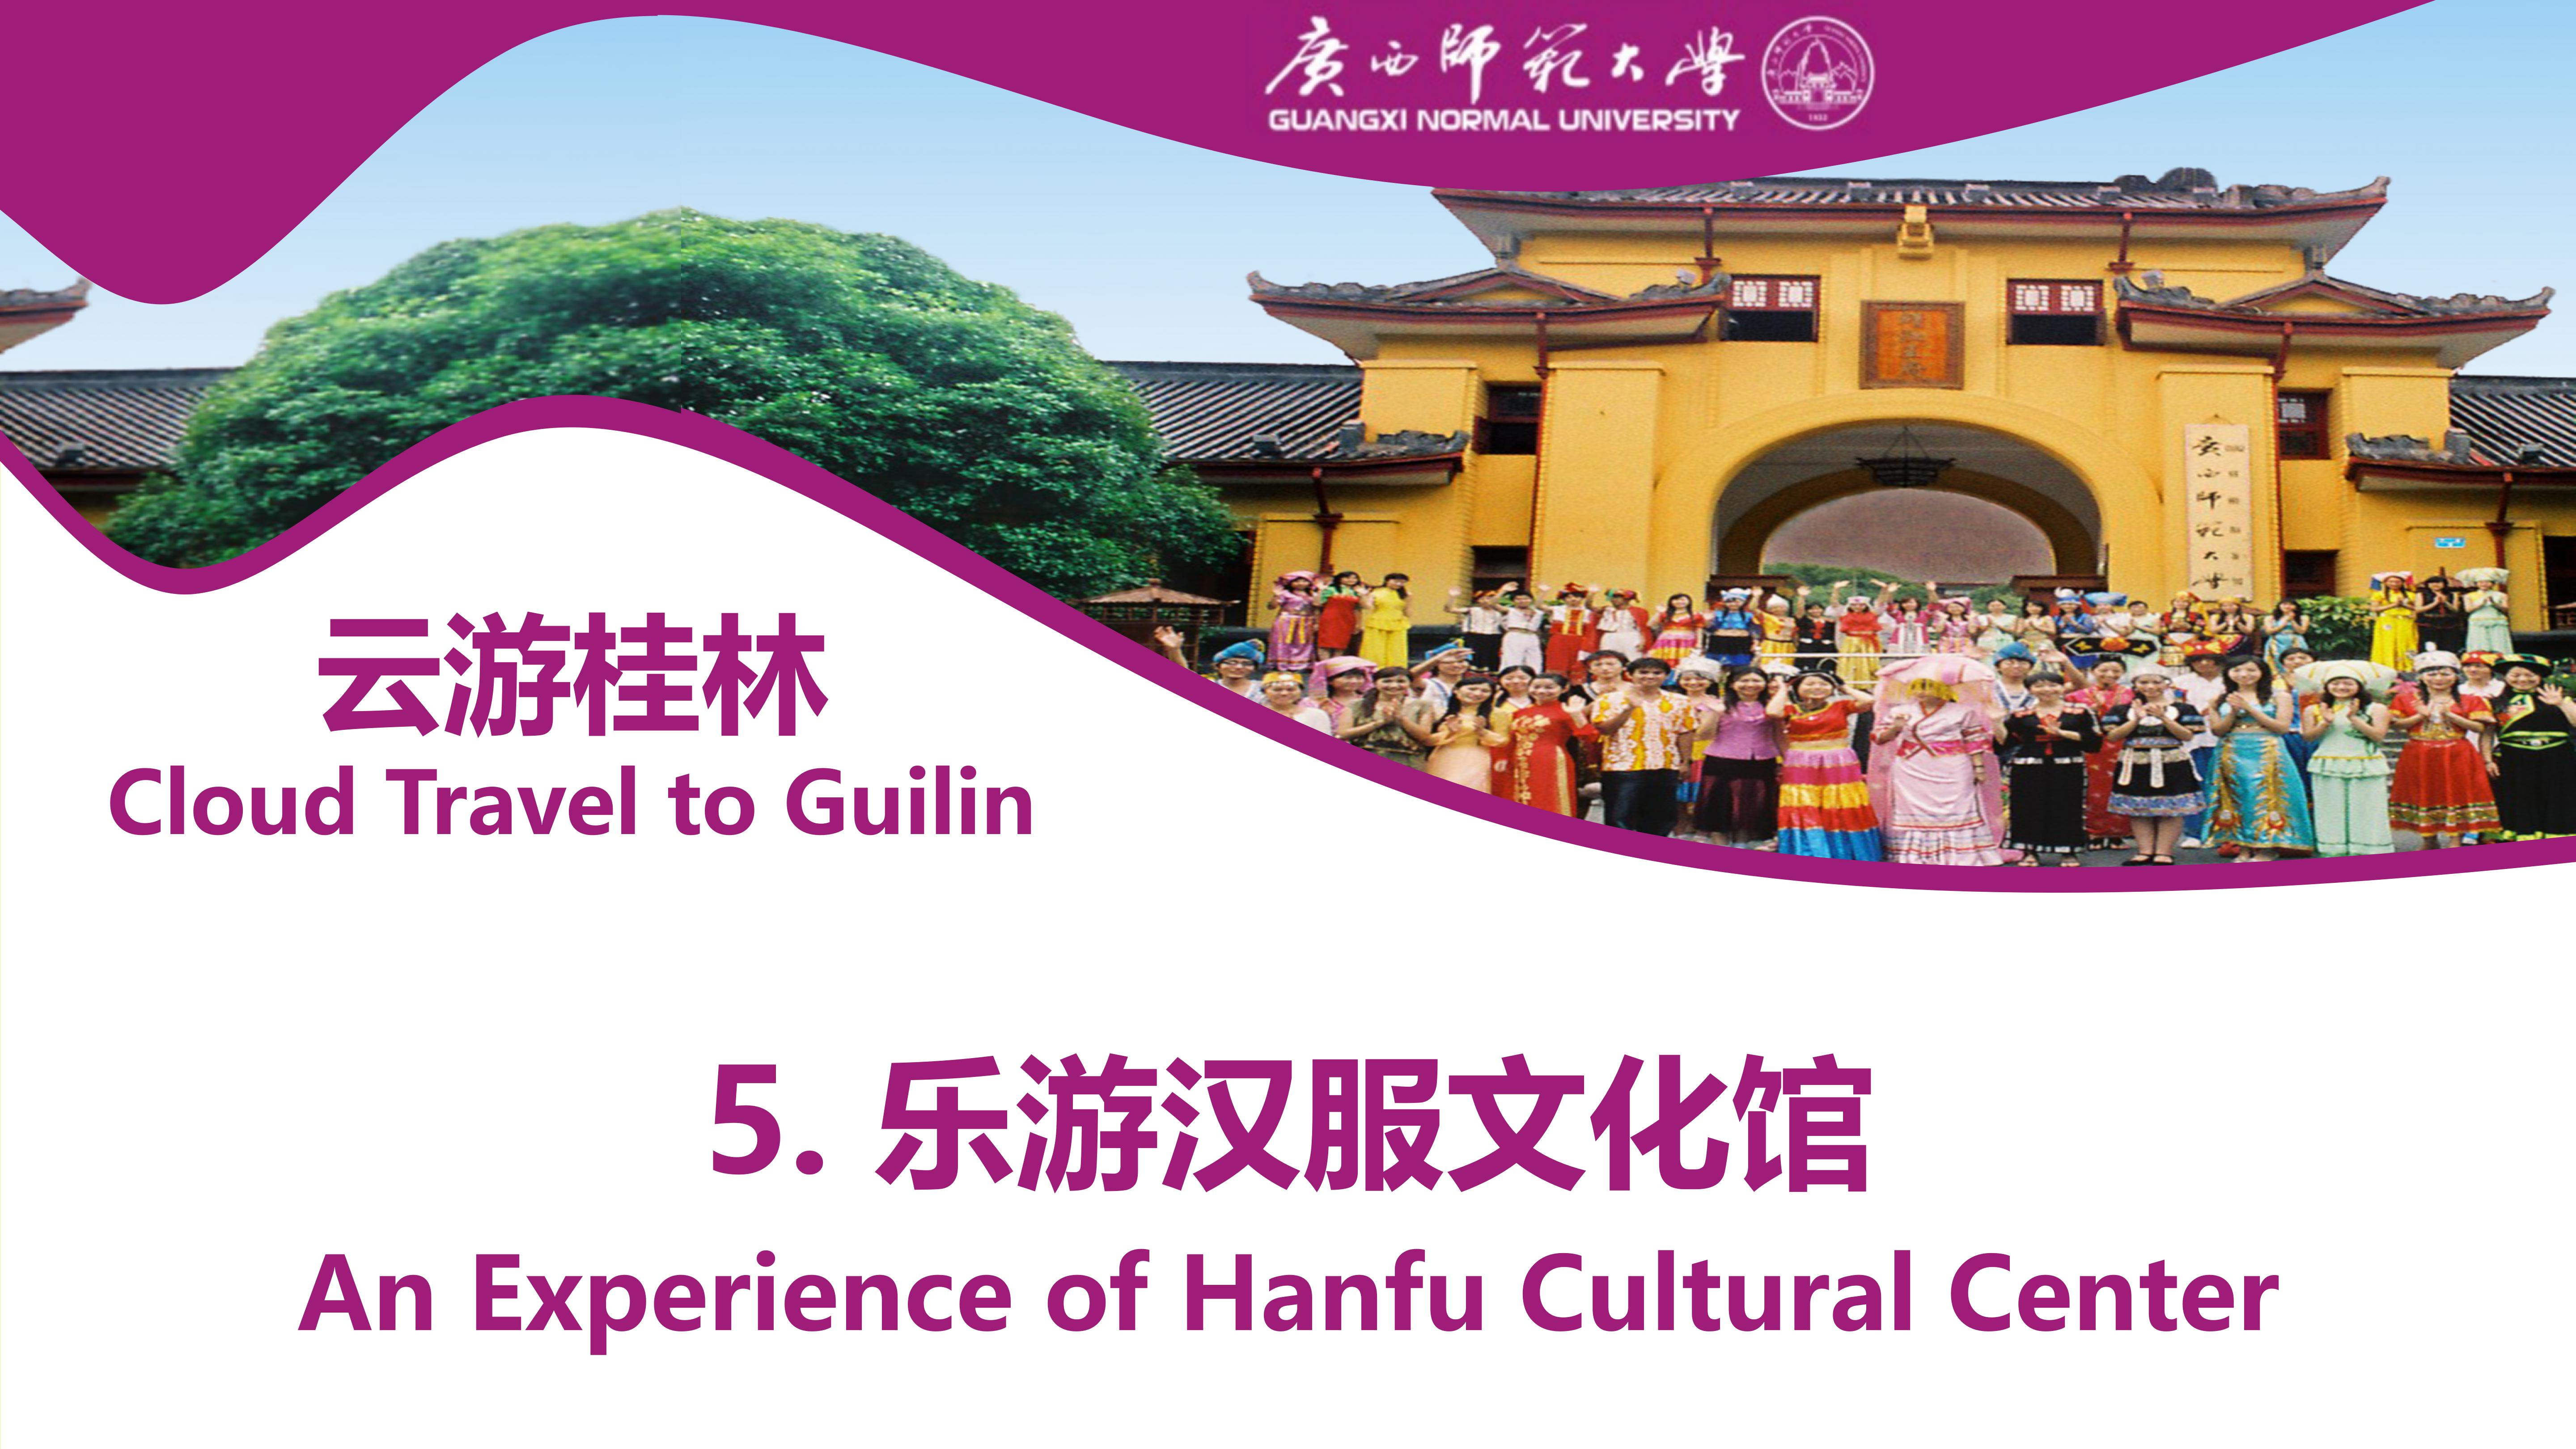 An Experience of Hanfu Cultural Center